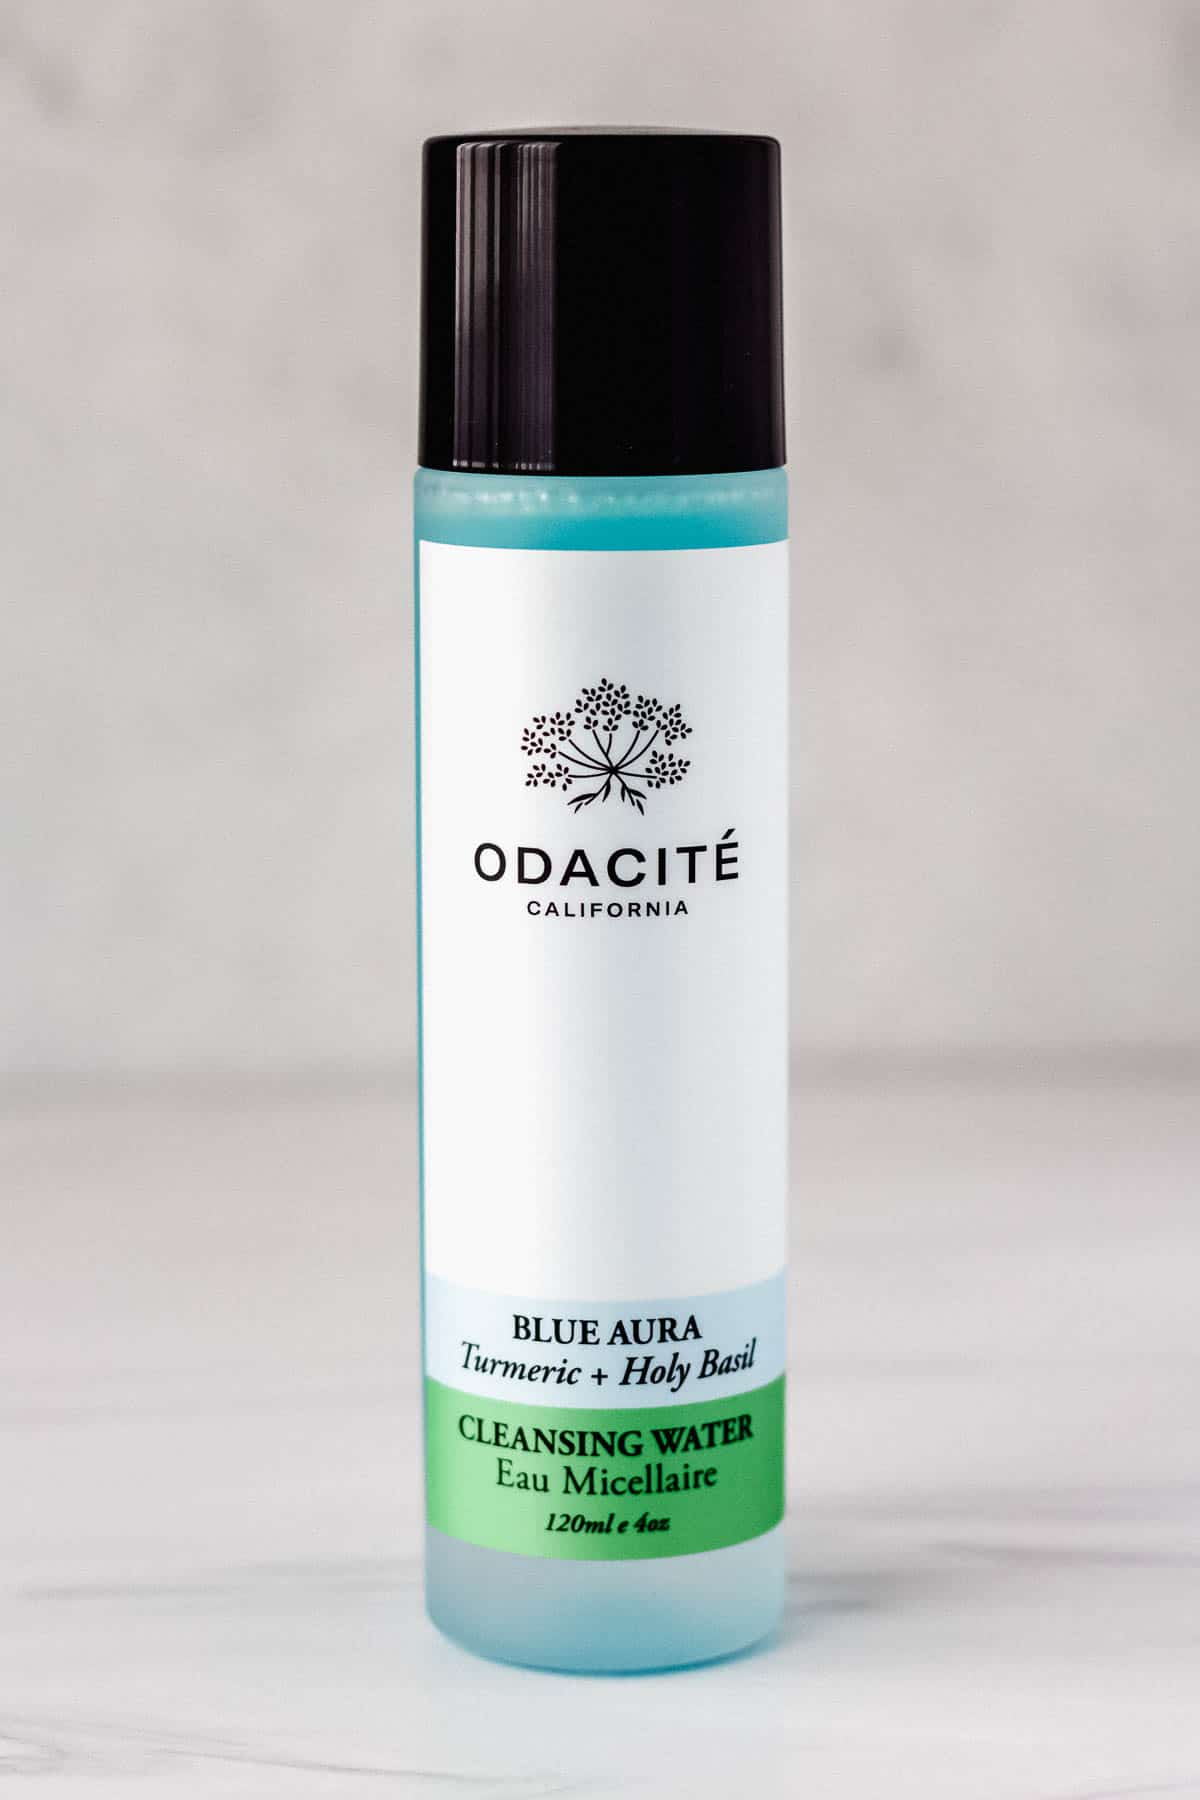 Odacite Blue Aura Cleansing Water jar on a gray background